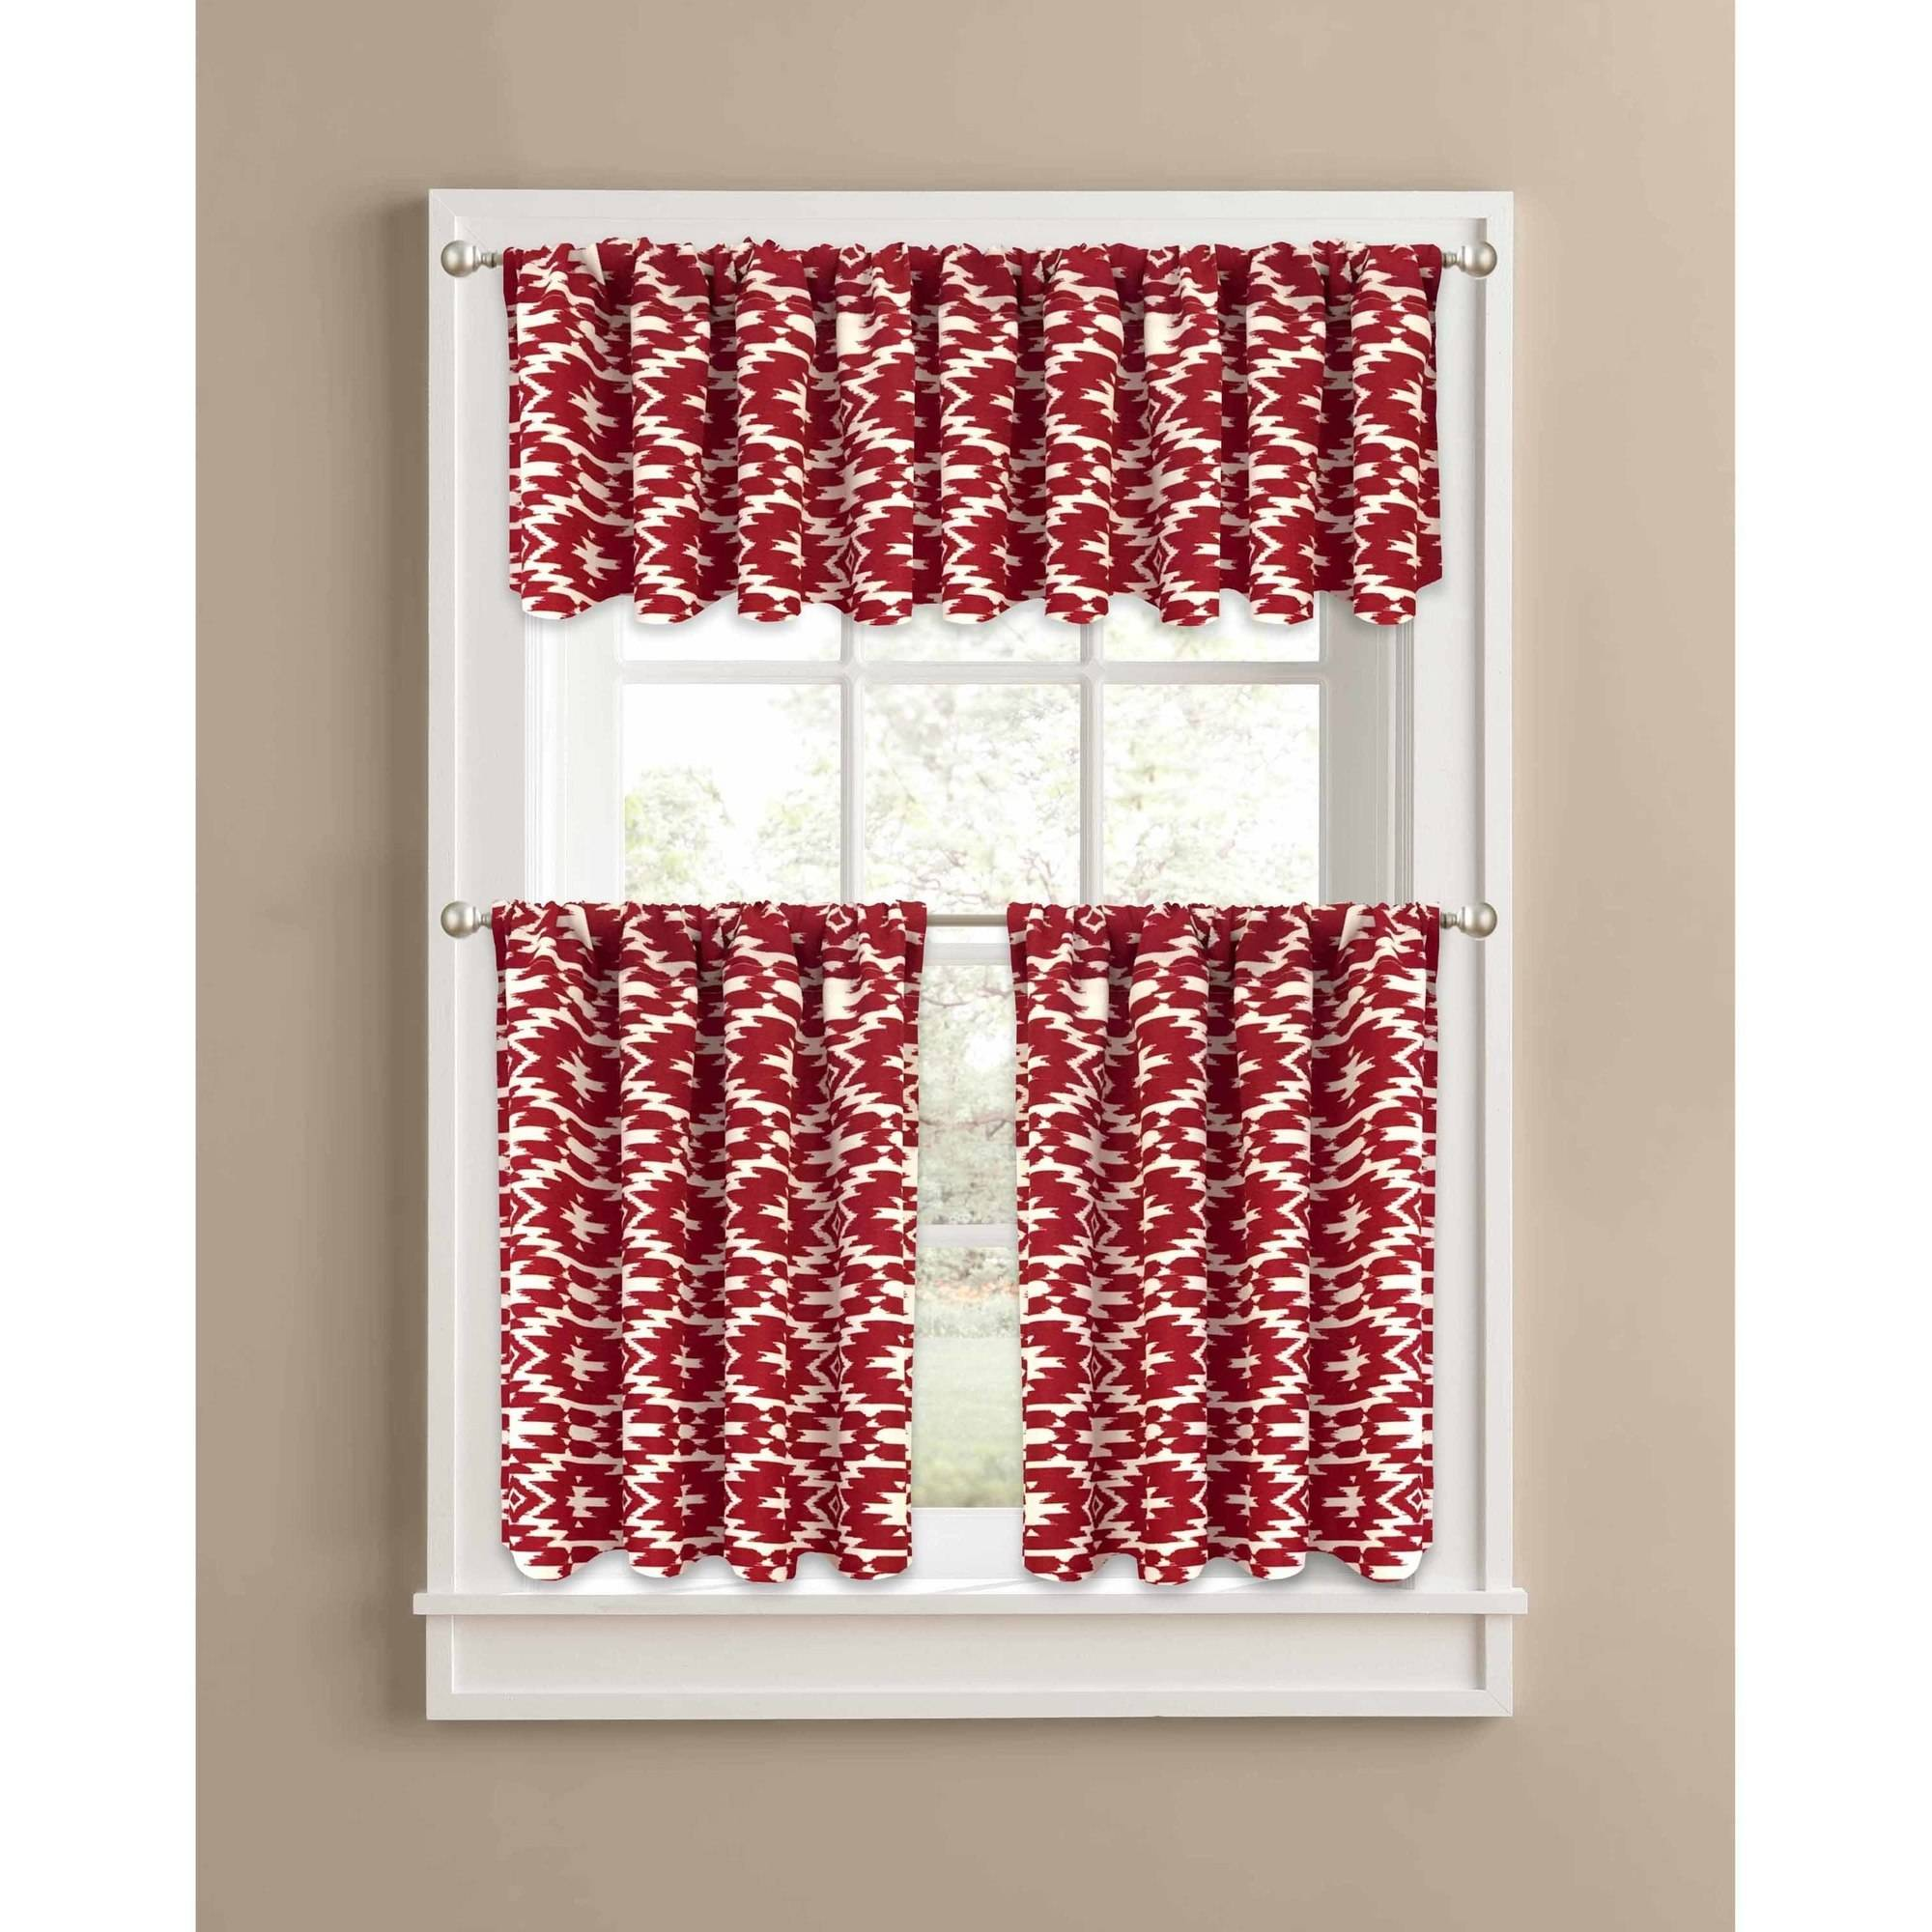 Country Red Kitchen Curtains: Better Homes And Gardens Red Southwest Kitchen Curtains, Set Of 2 Or Valance